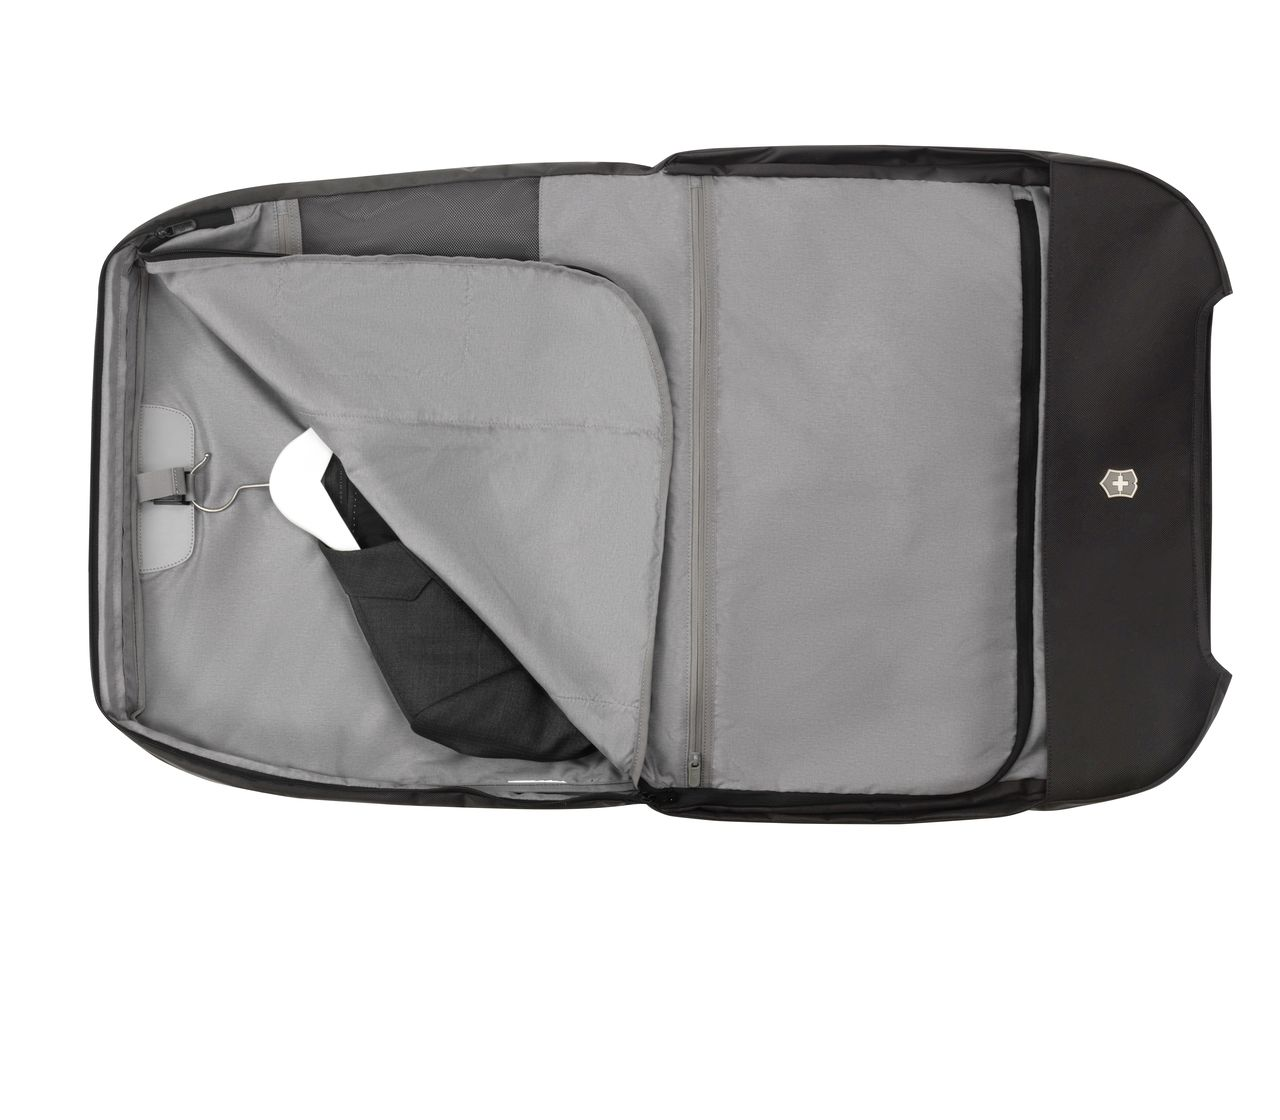 Victorinox Werks Traveler 6 0 Garment Sleeve In Black 605581